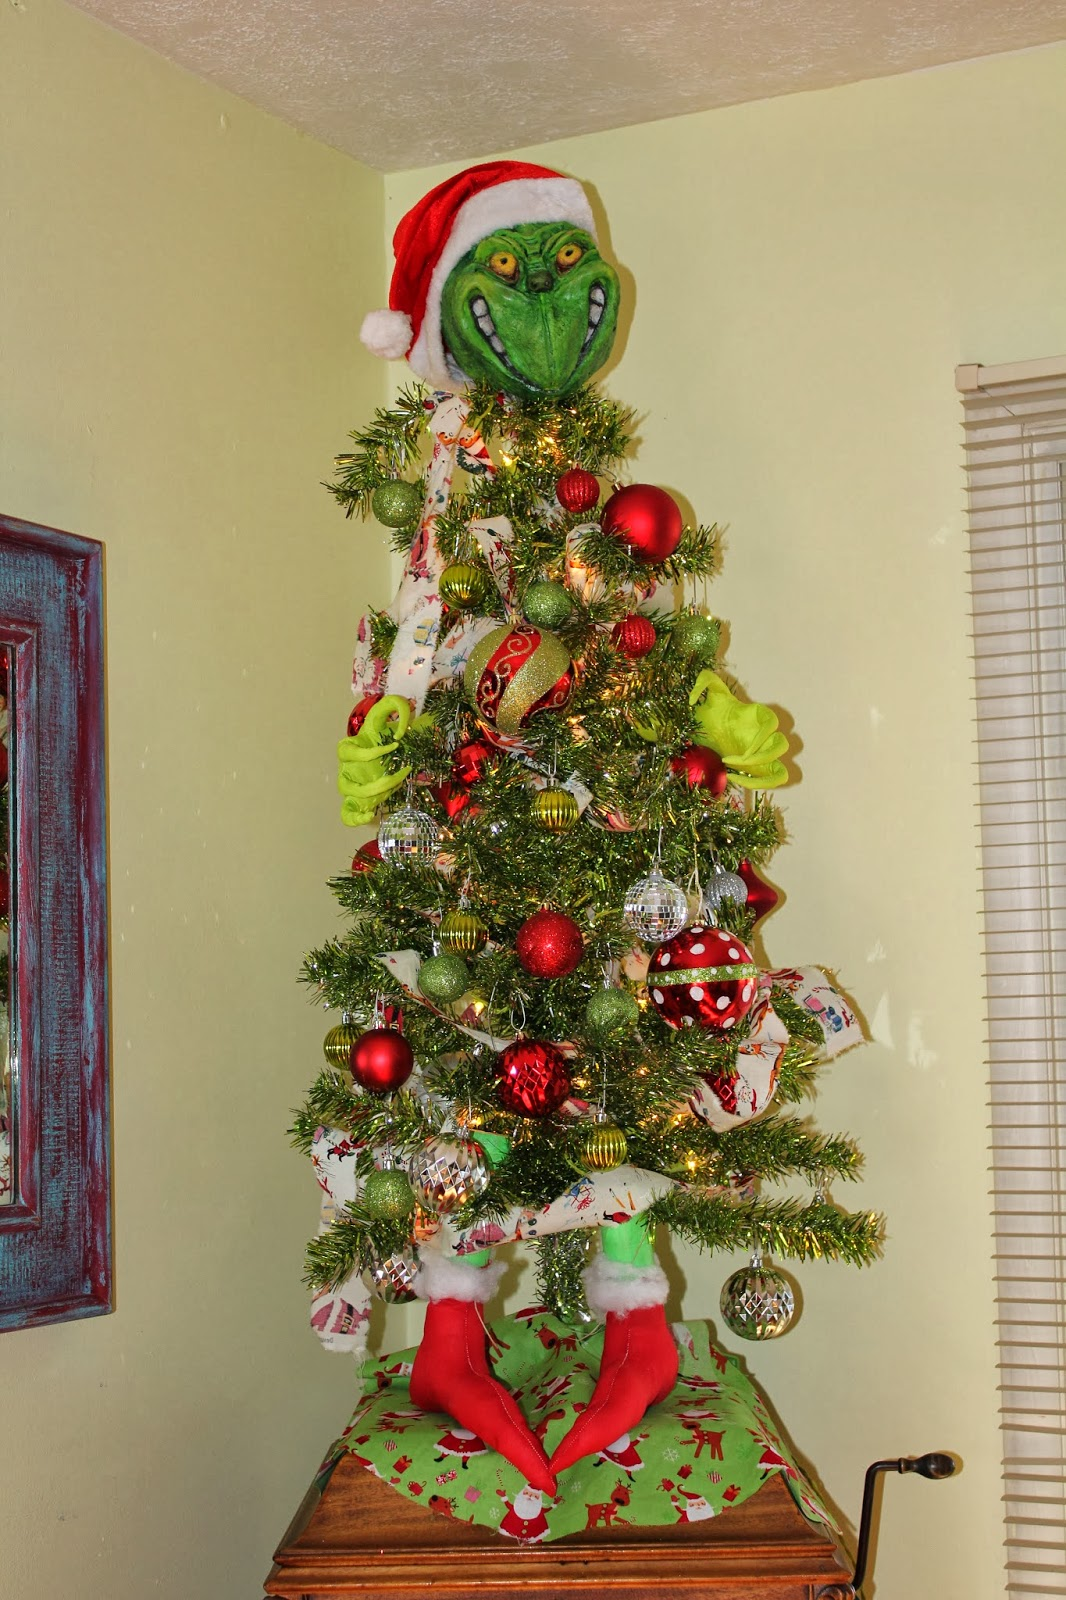 Christmas Grinch Decorations.40 Grinch Christmas Decorations Ideas Decoration Love